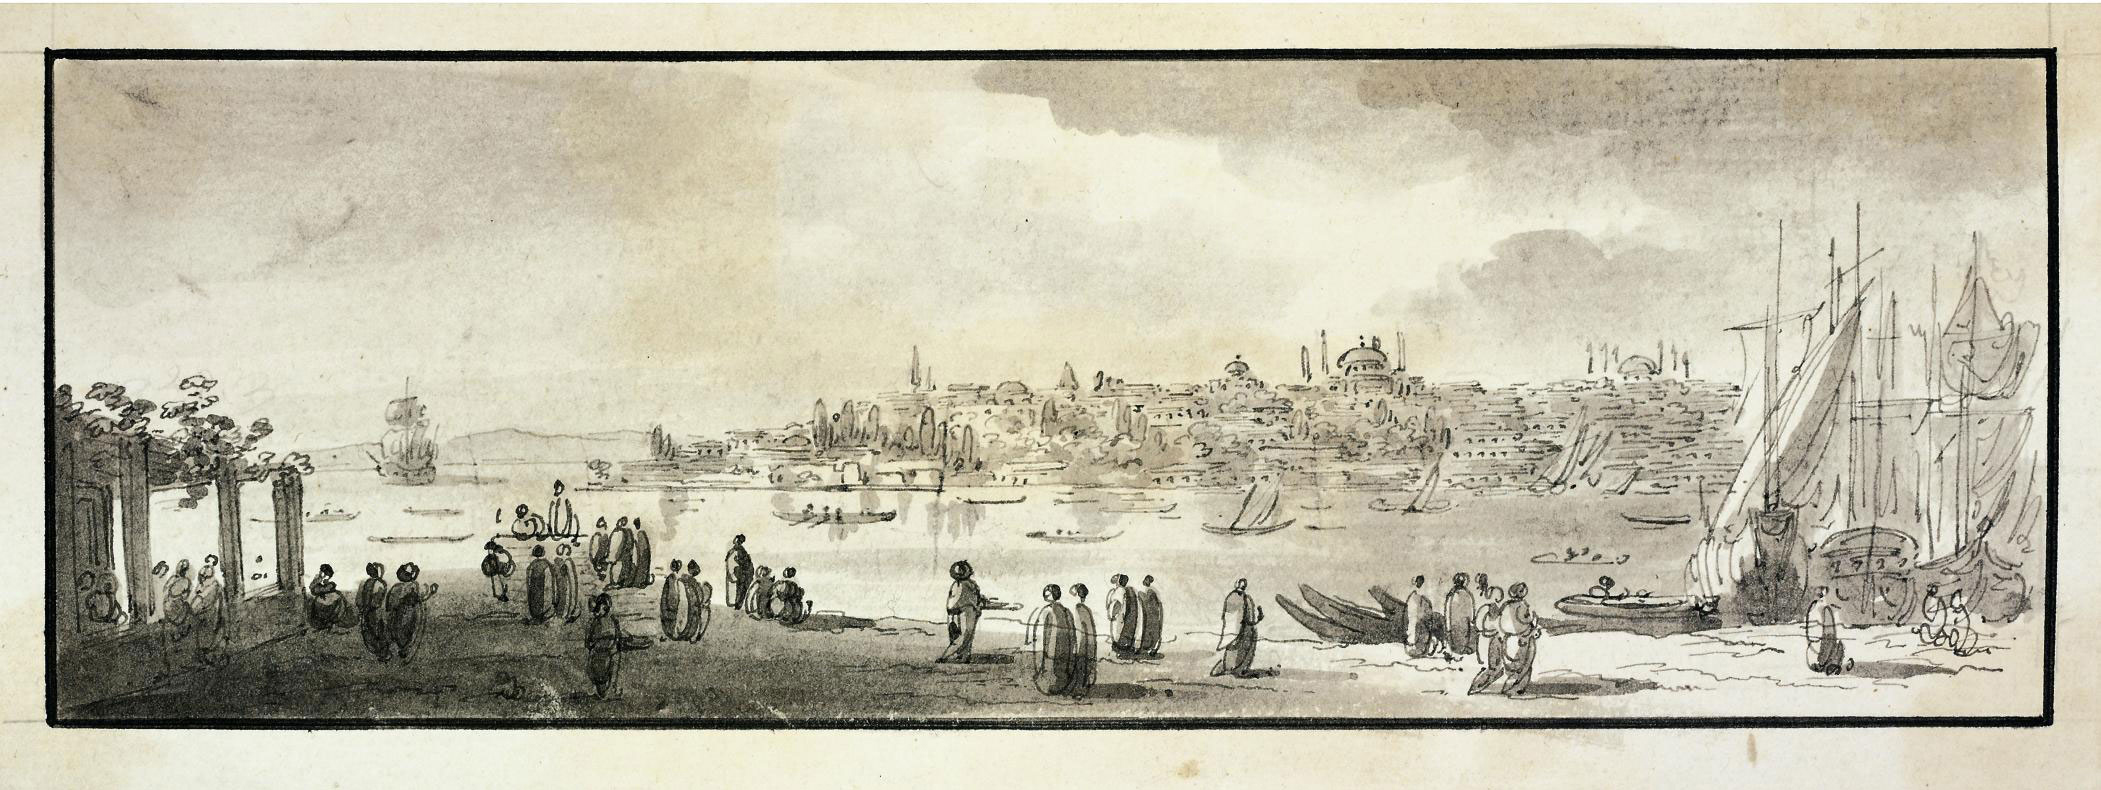 On the Bosphorus before the mosques of Hagia Sophia and Sultan Ahmed